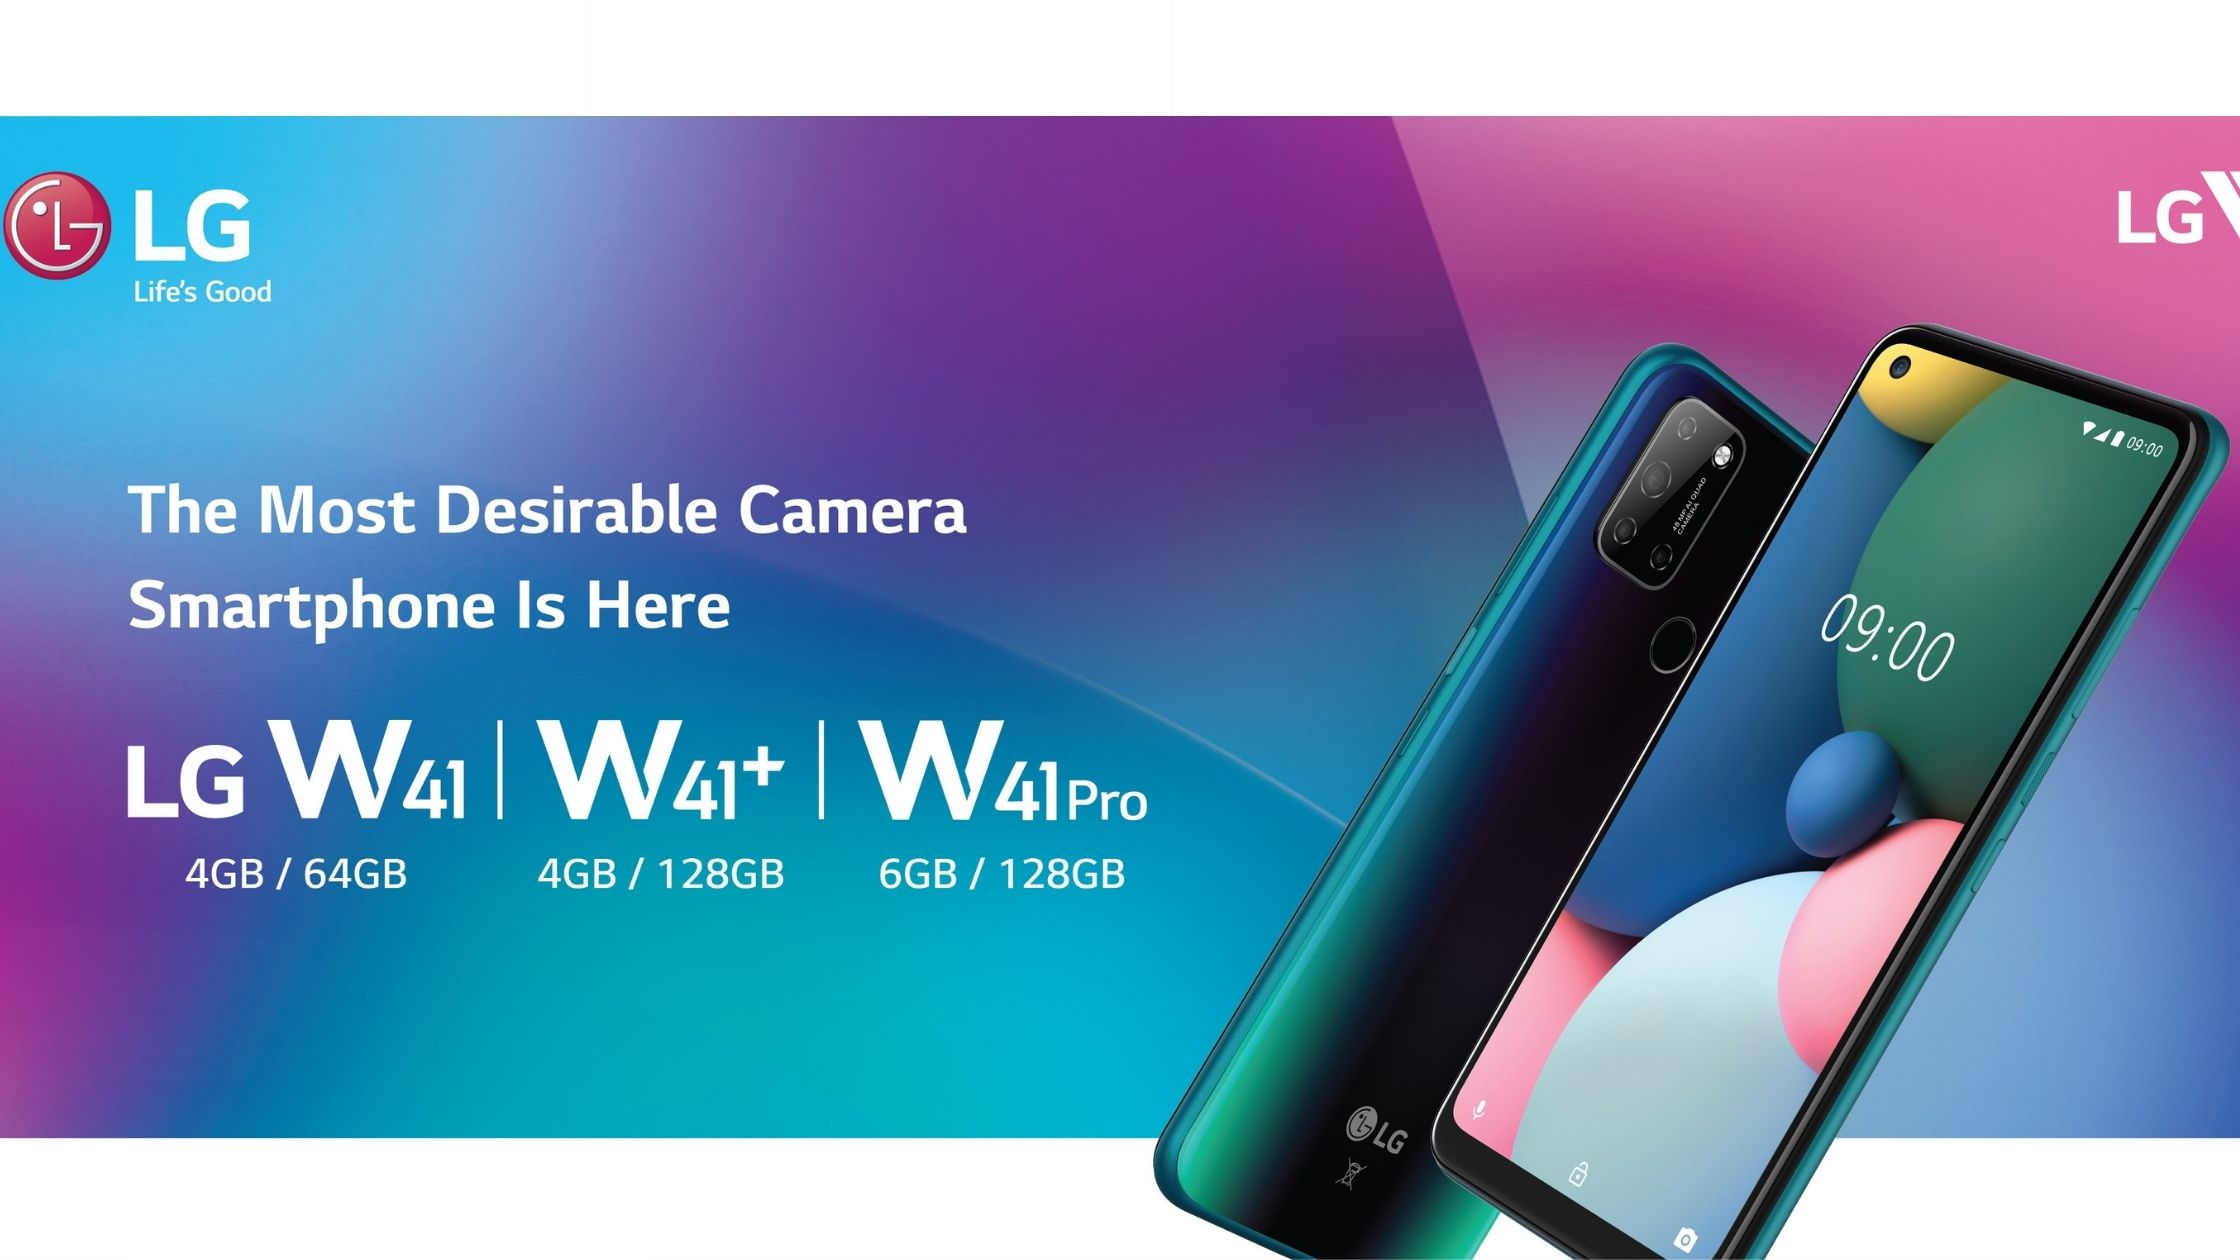 LG W41, W41 Plus, and W41 Pro launched in India with a 5,000mAh battery thumbnail